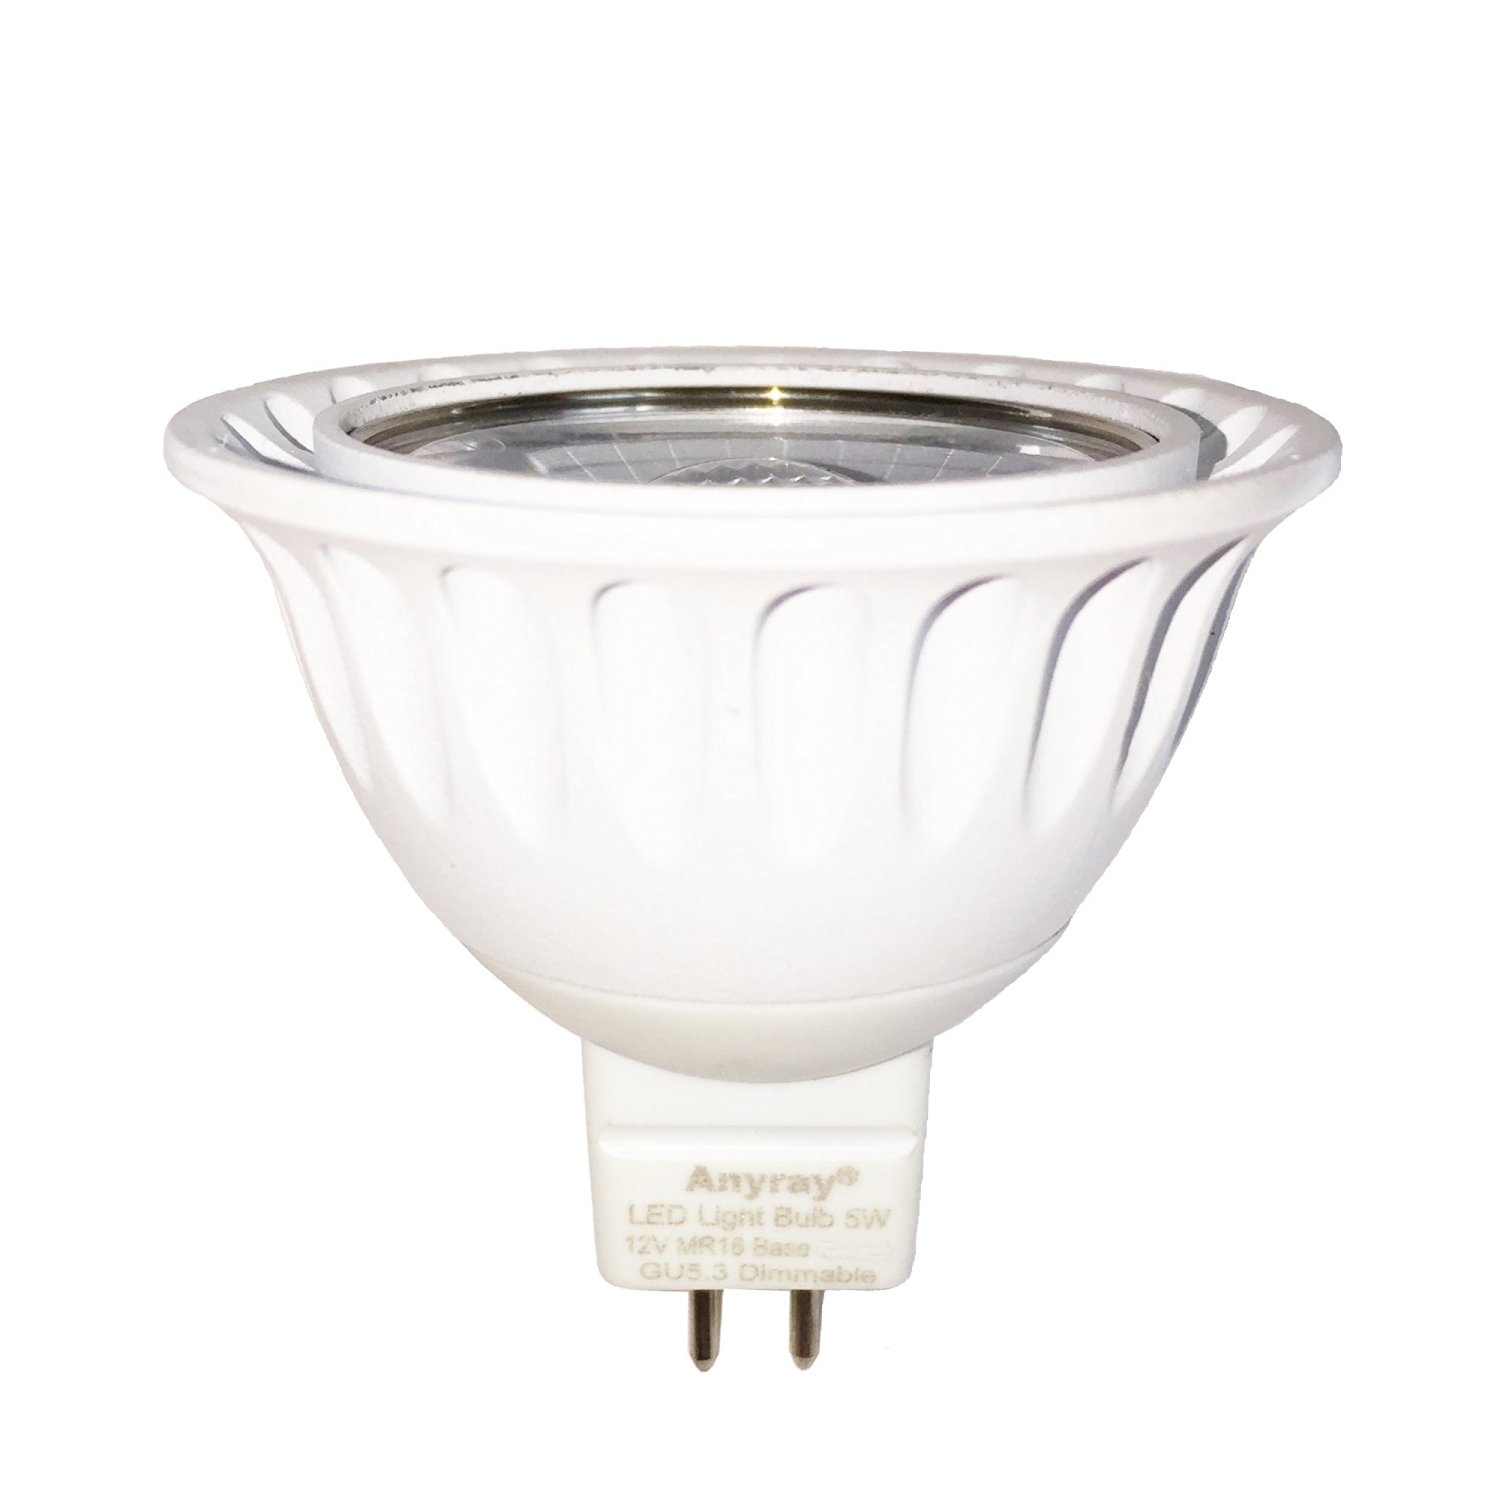 Anyray 1-Bulb Dimmable 5W GU5.3 MR16 LED Bulb, Equal to 20W-35Watt Halogen Bulb, 12 VAC/DC, Red Color